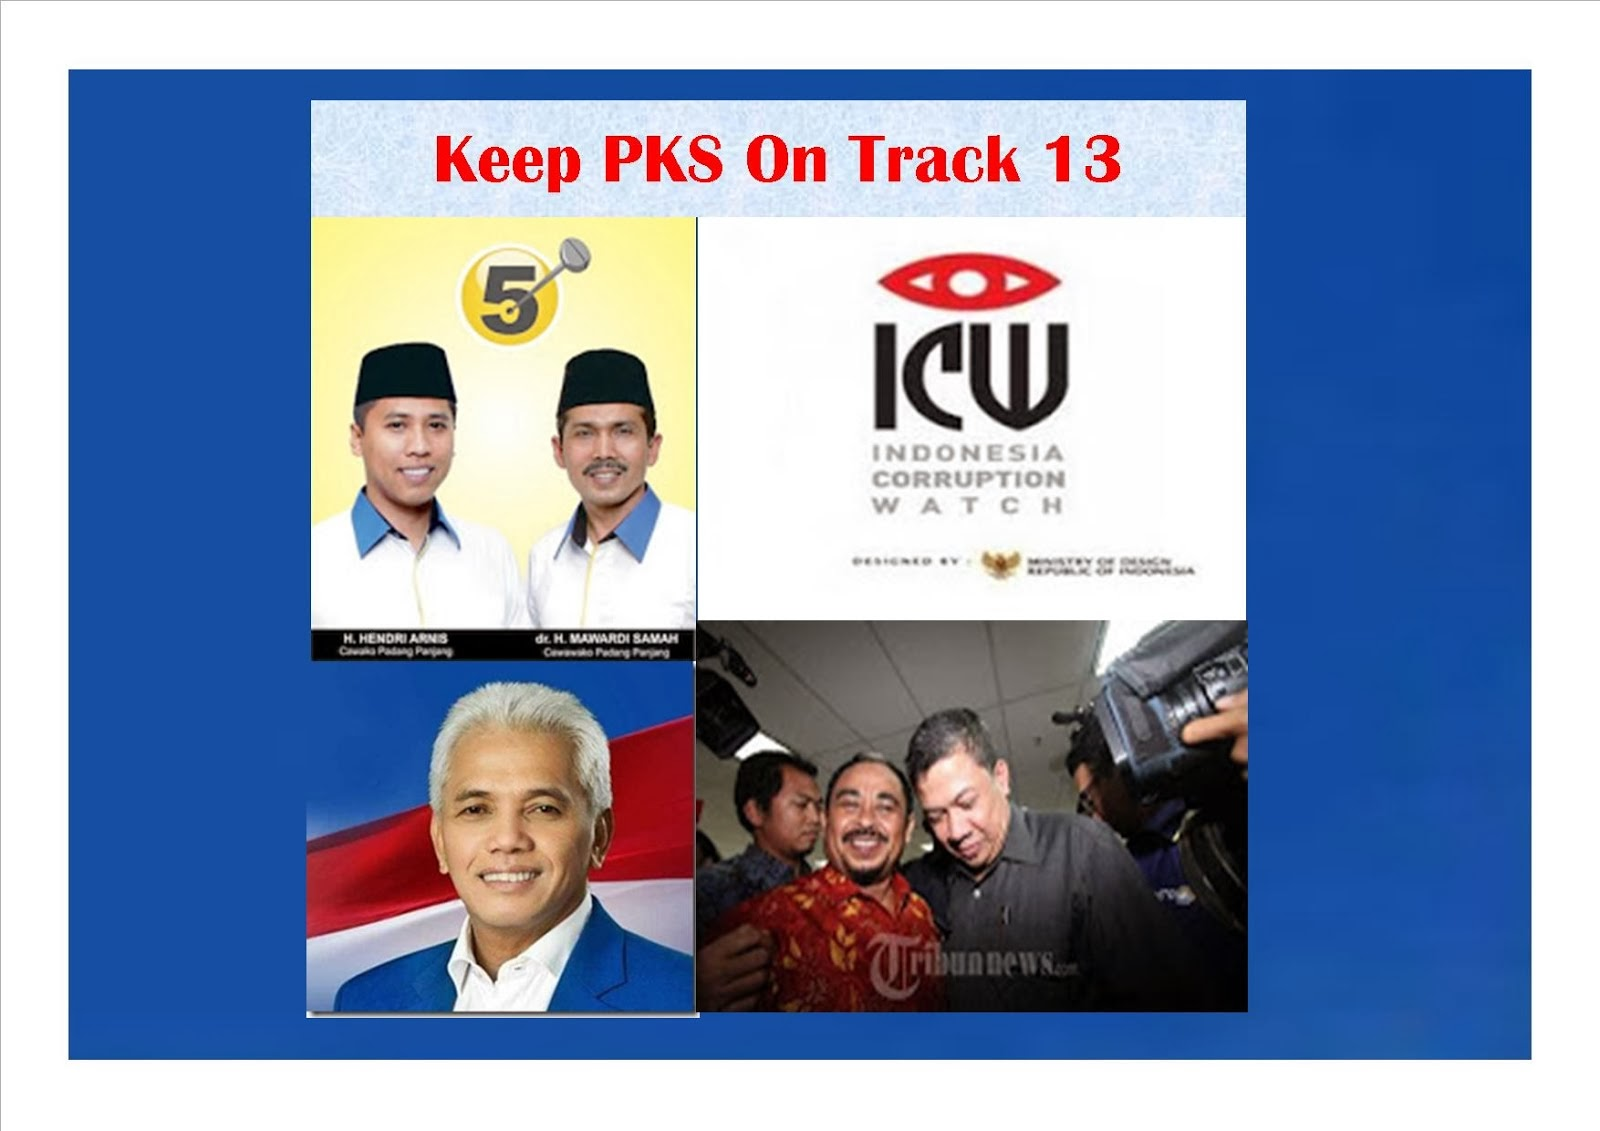 Keep PKS On Track 13